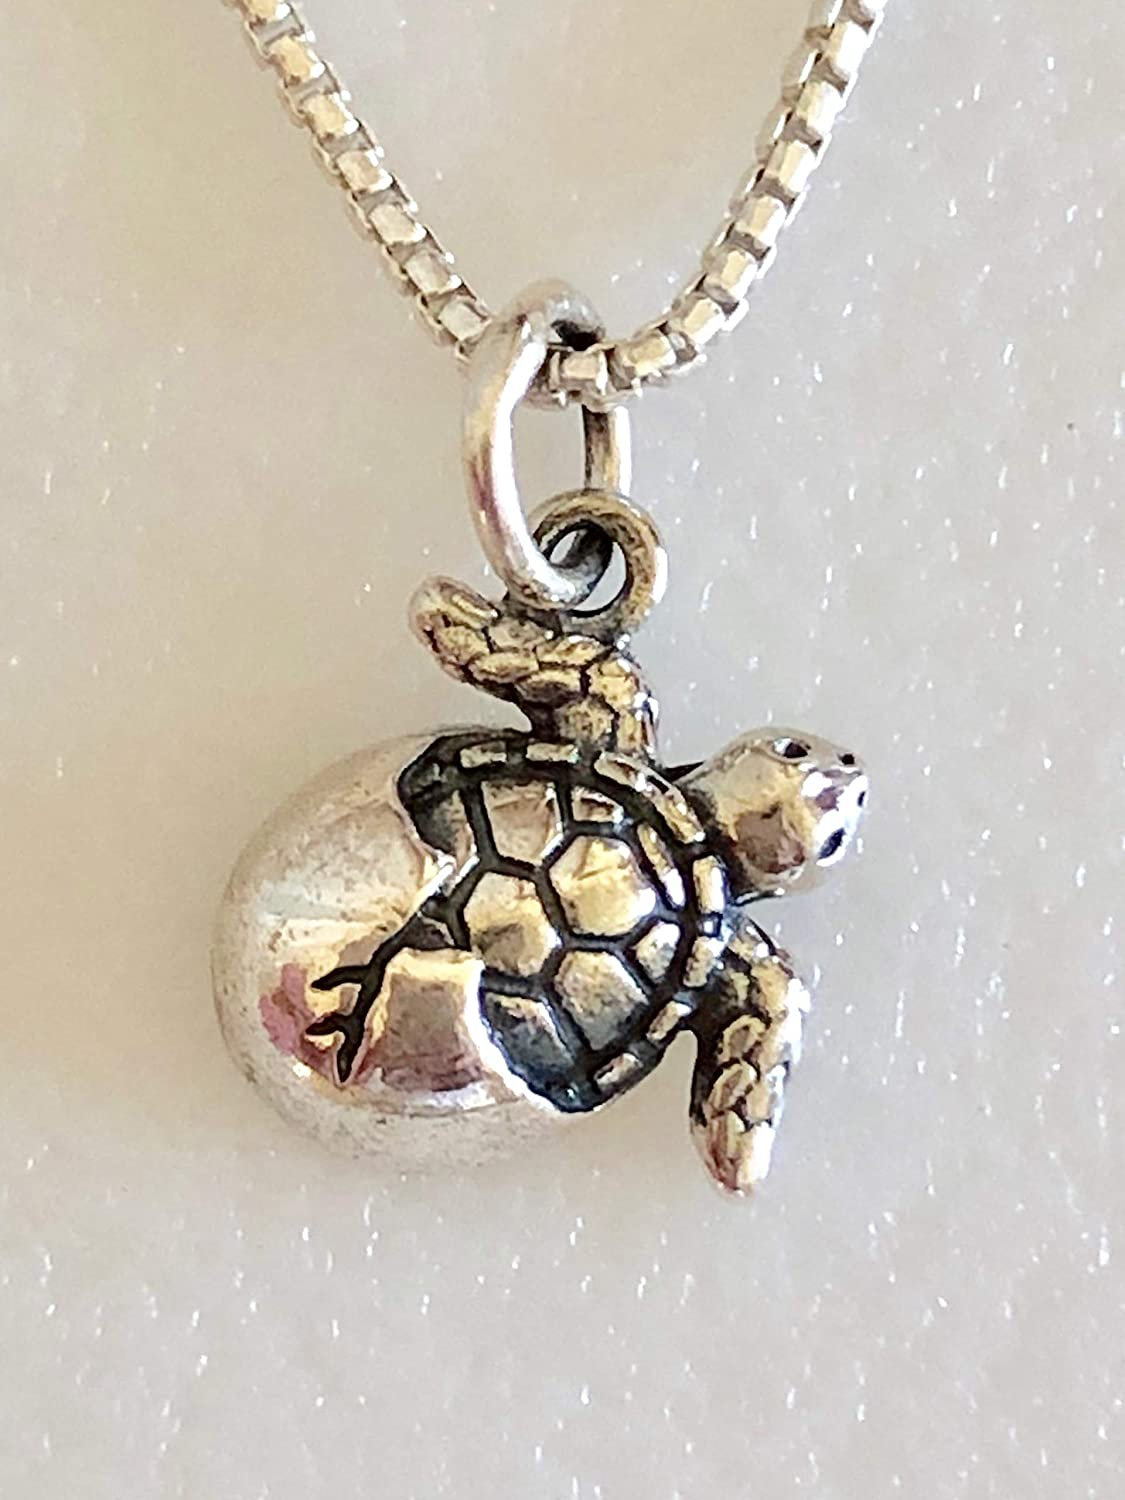 Baby Turtle Pendant in Solid 925 Sterling Silver